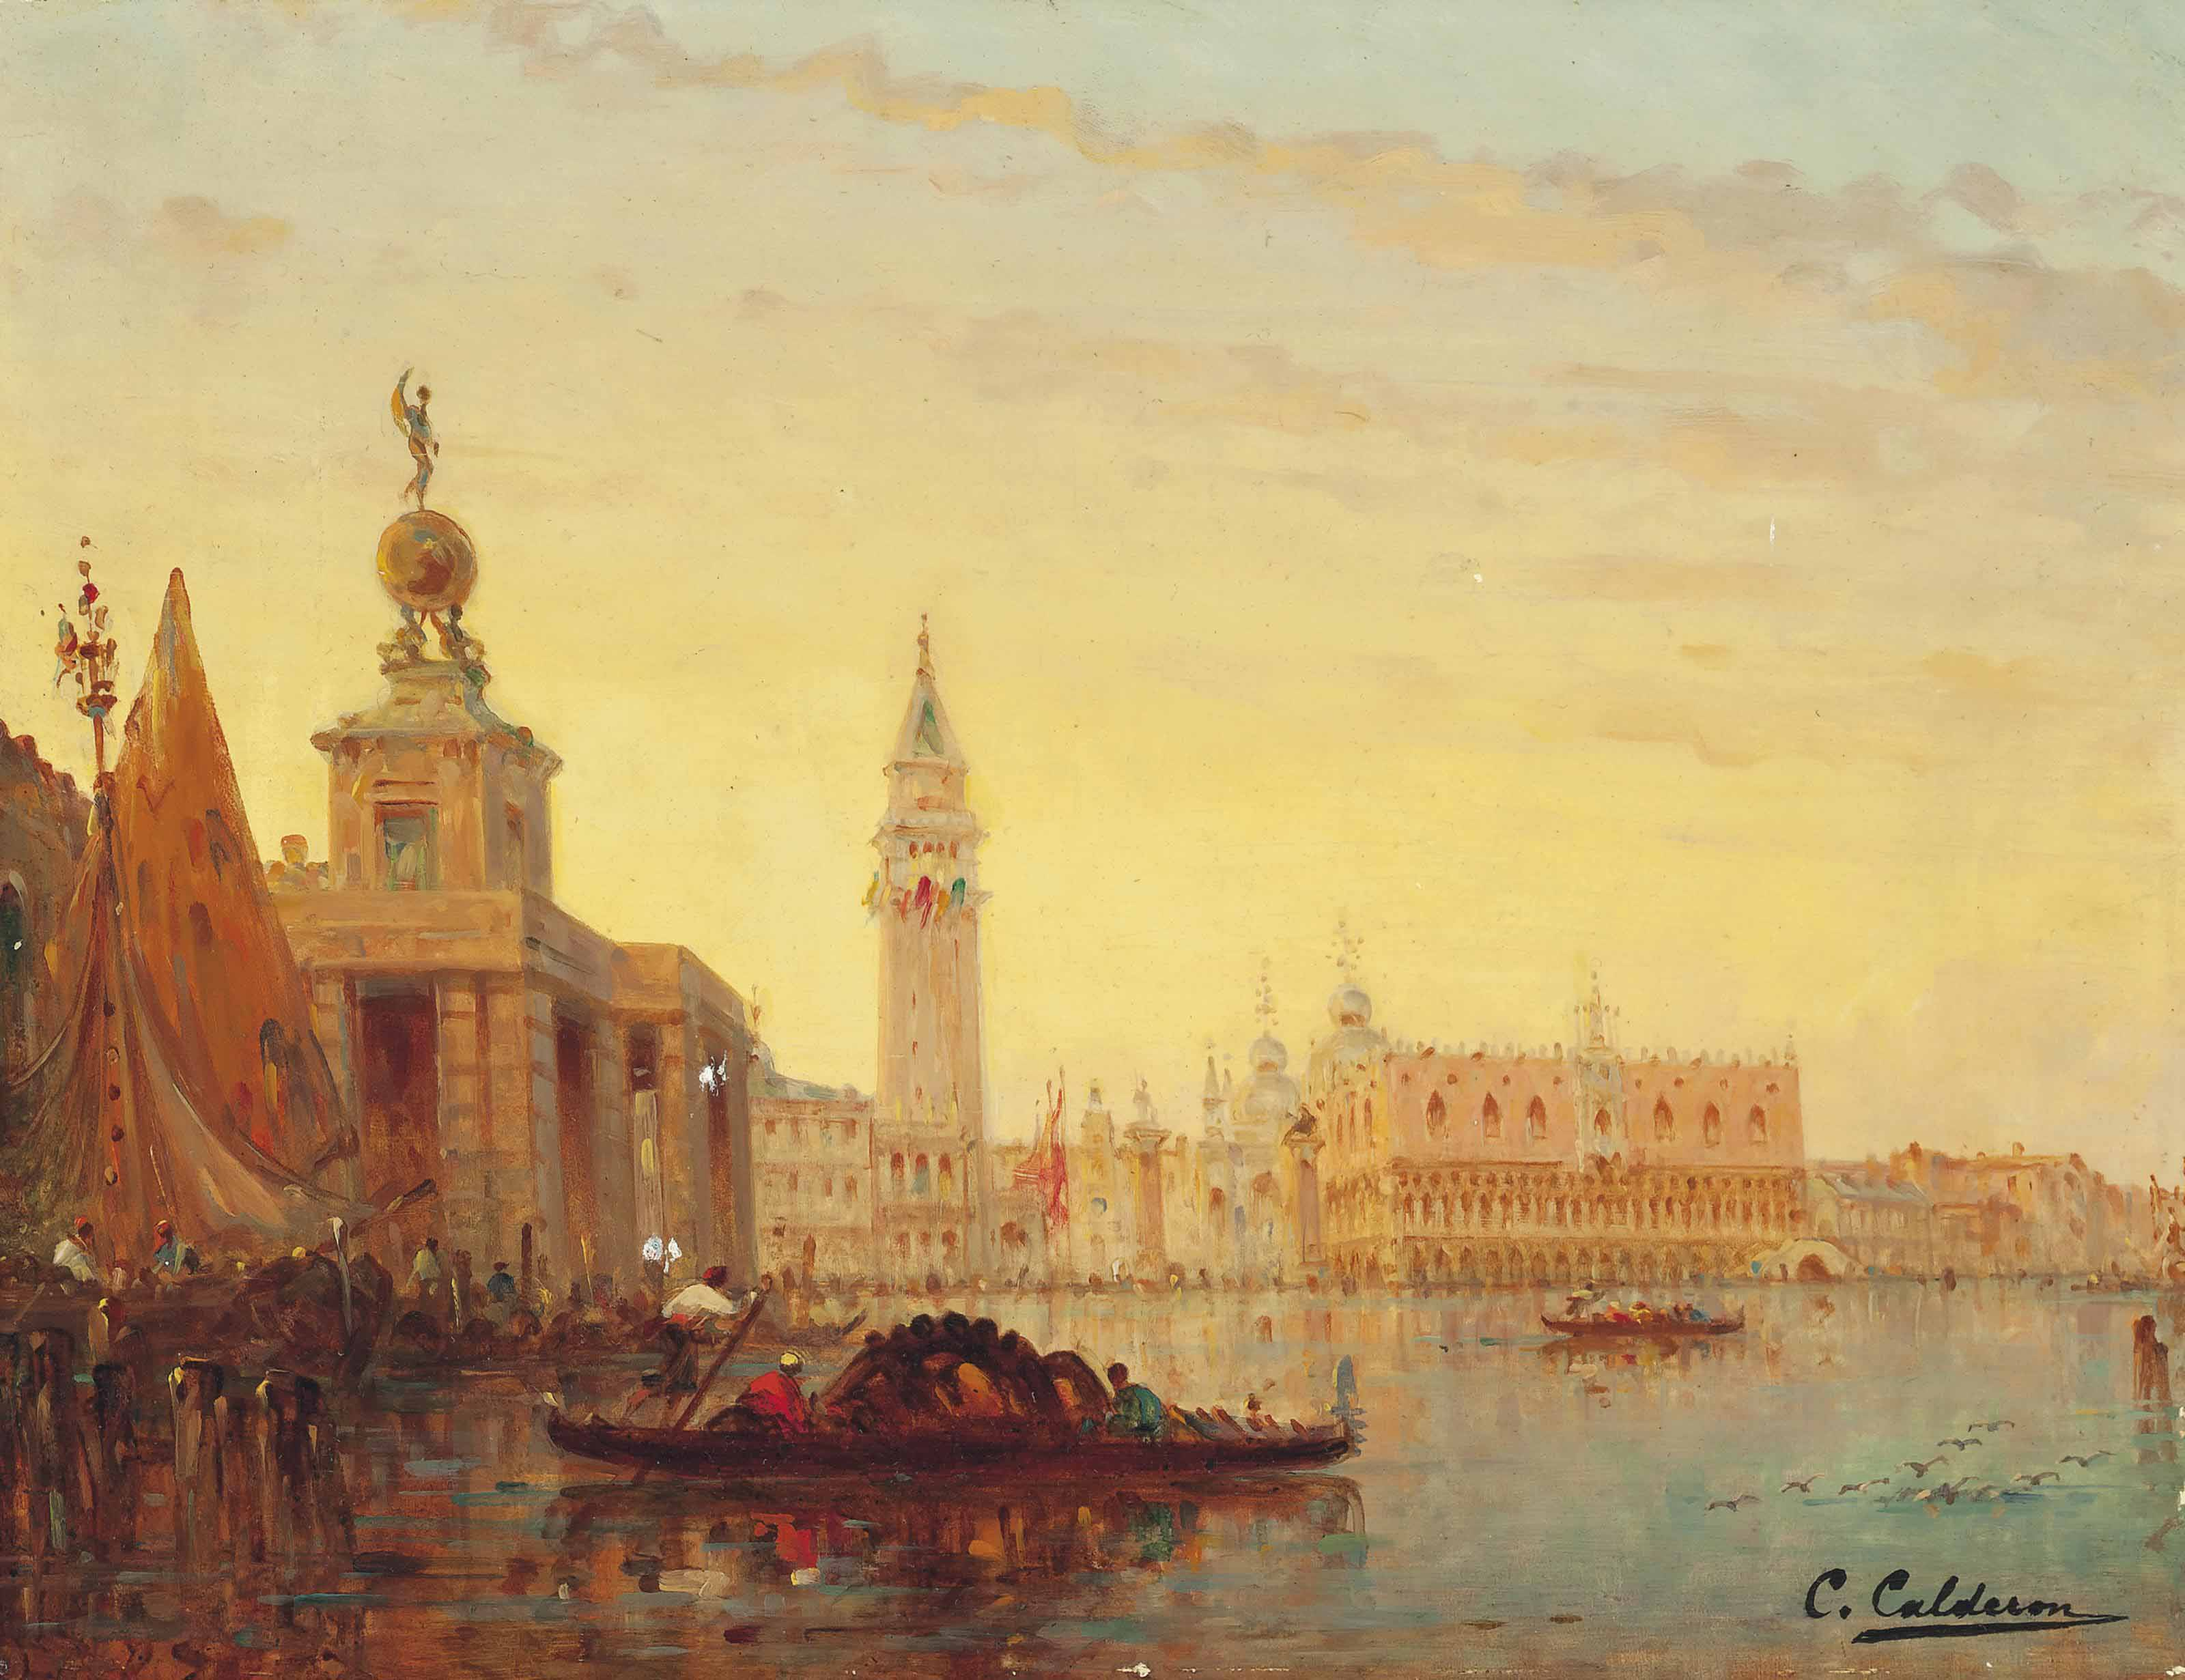 A busy day at the customs house, Venice